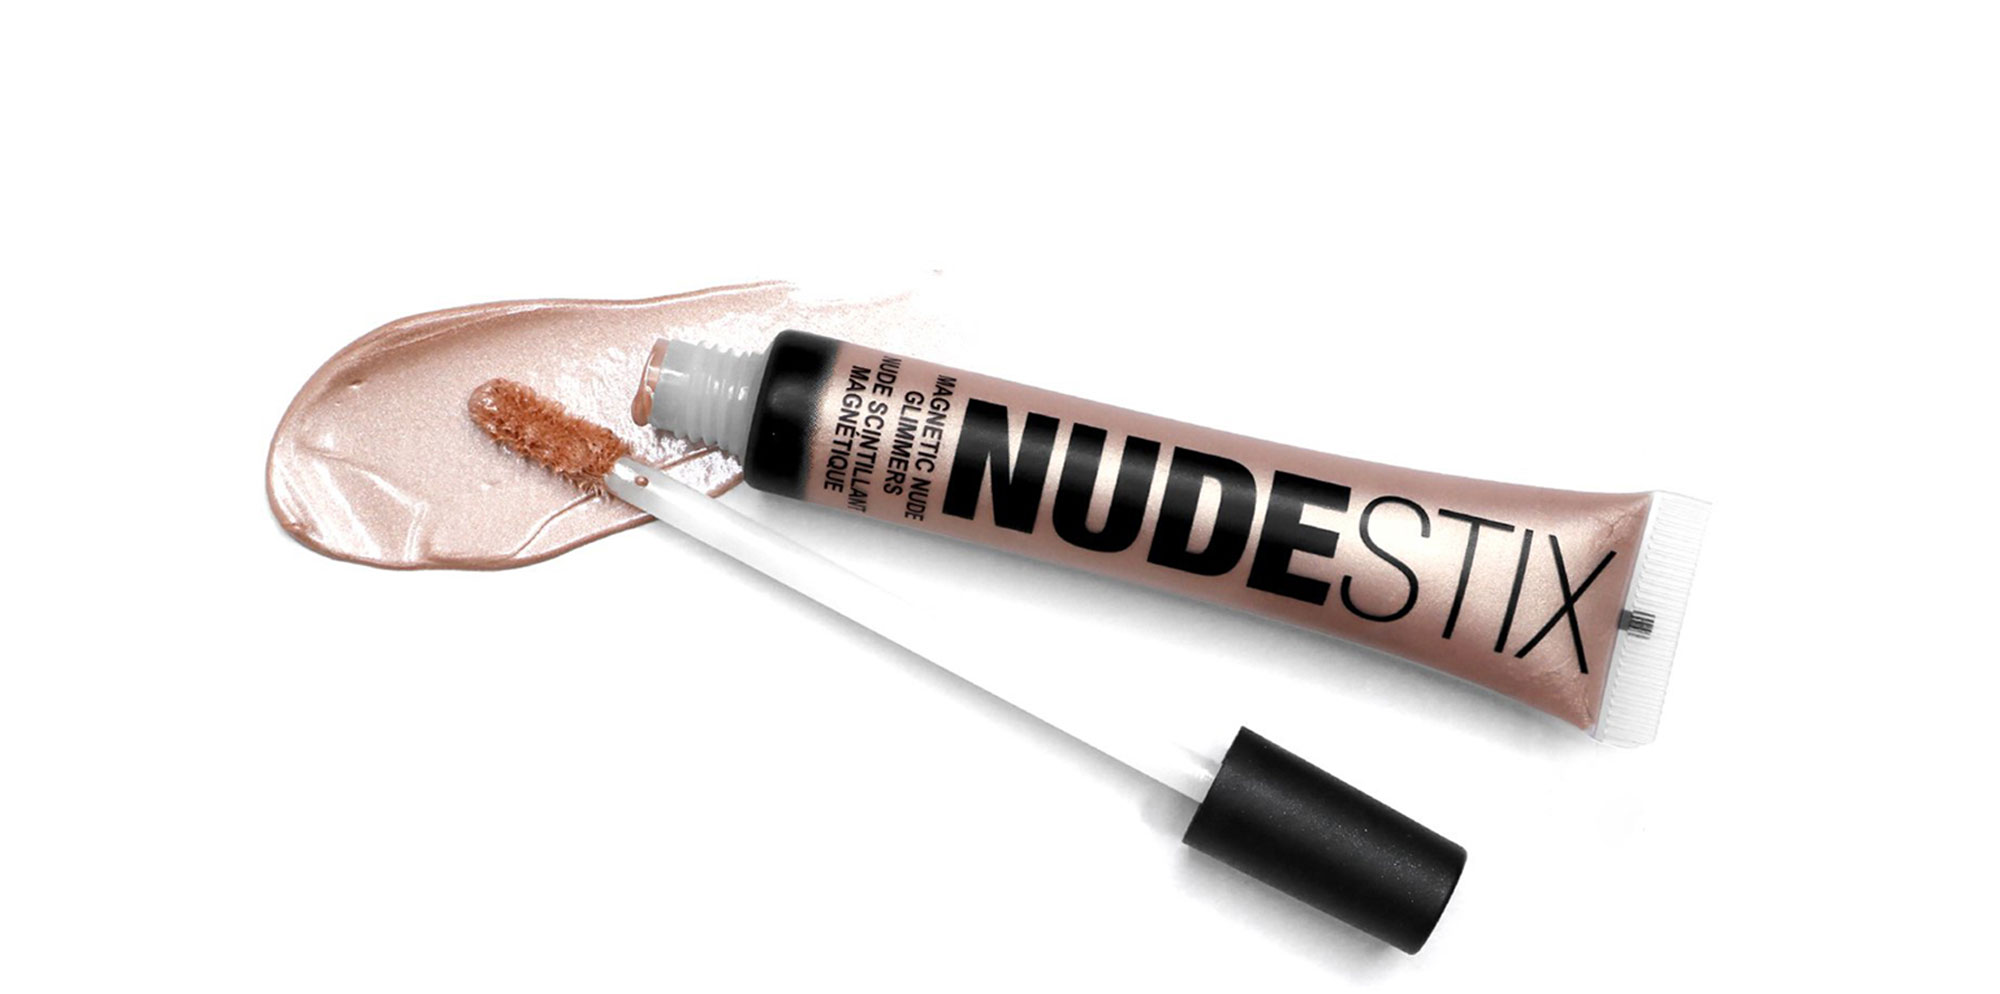 Best New Products Nudestix - The mother-daughter-founded brand based in versatility is here with its latest multitasking wonder. Available in a trio of radiant shades, the shimmering gel formula is super emollient (i.e. glides on like a dream) but sets for all-day, waterproof wear that can be used on eyes, lips and face for a lit-from-within effect.